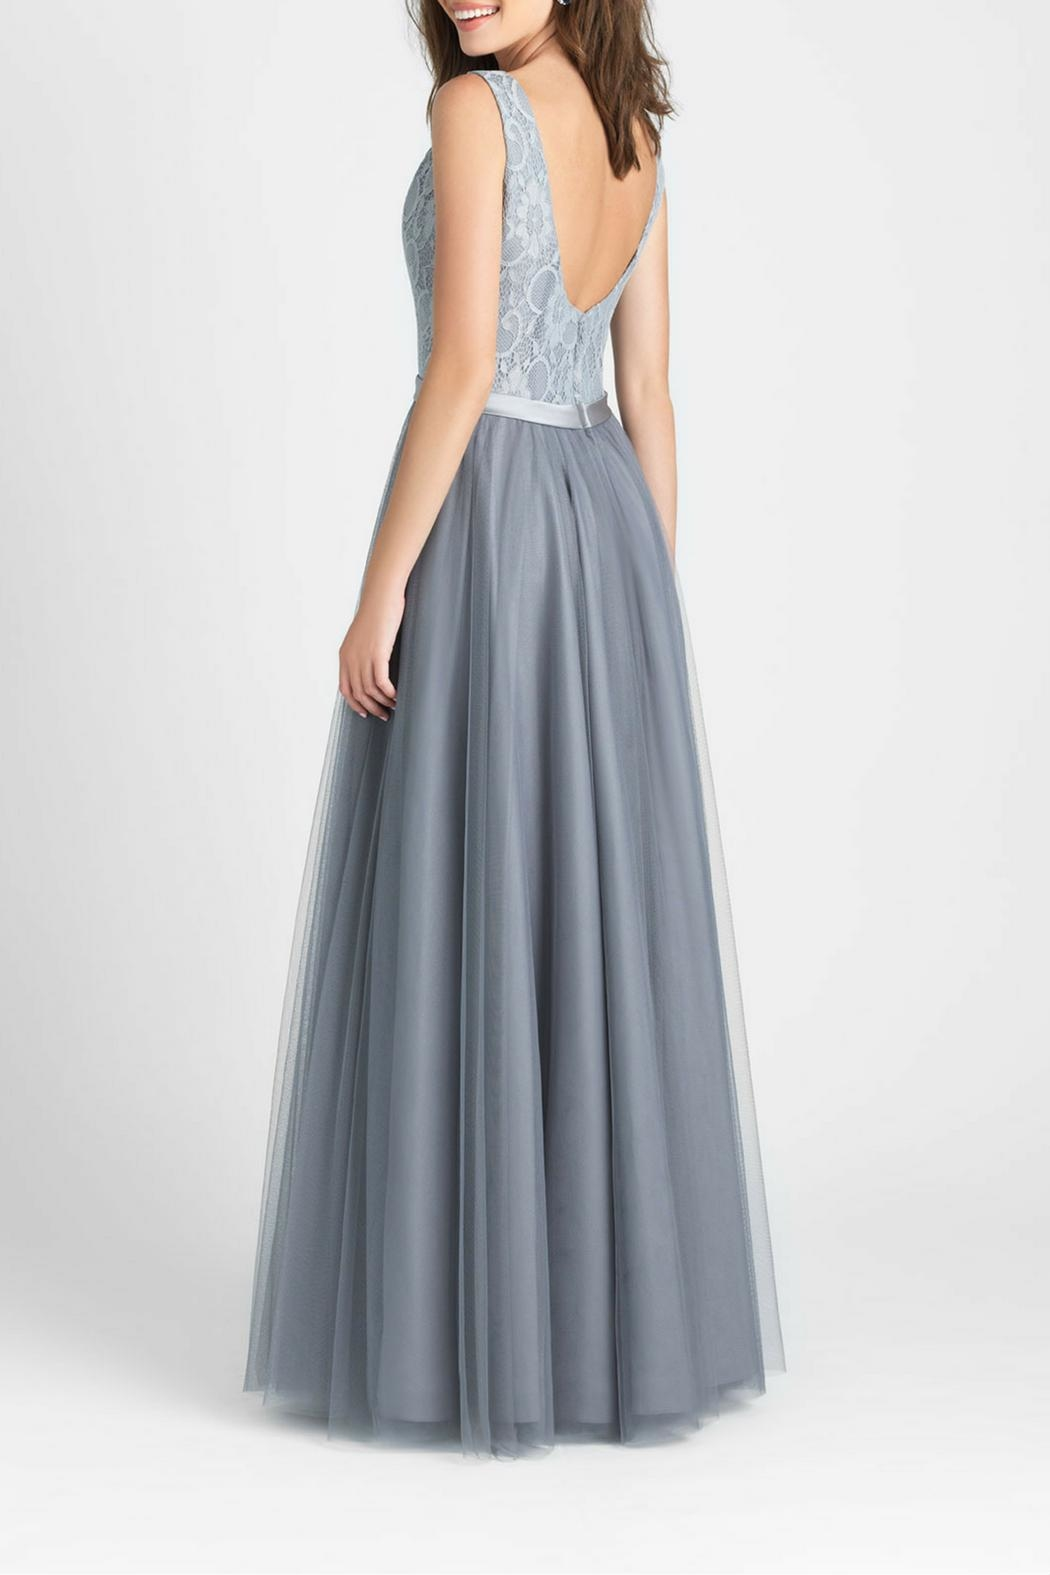 Allure Bridals Lace Tulle Bridesmaid Gown - Front Full Image